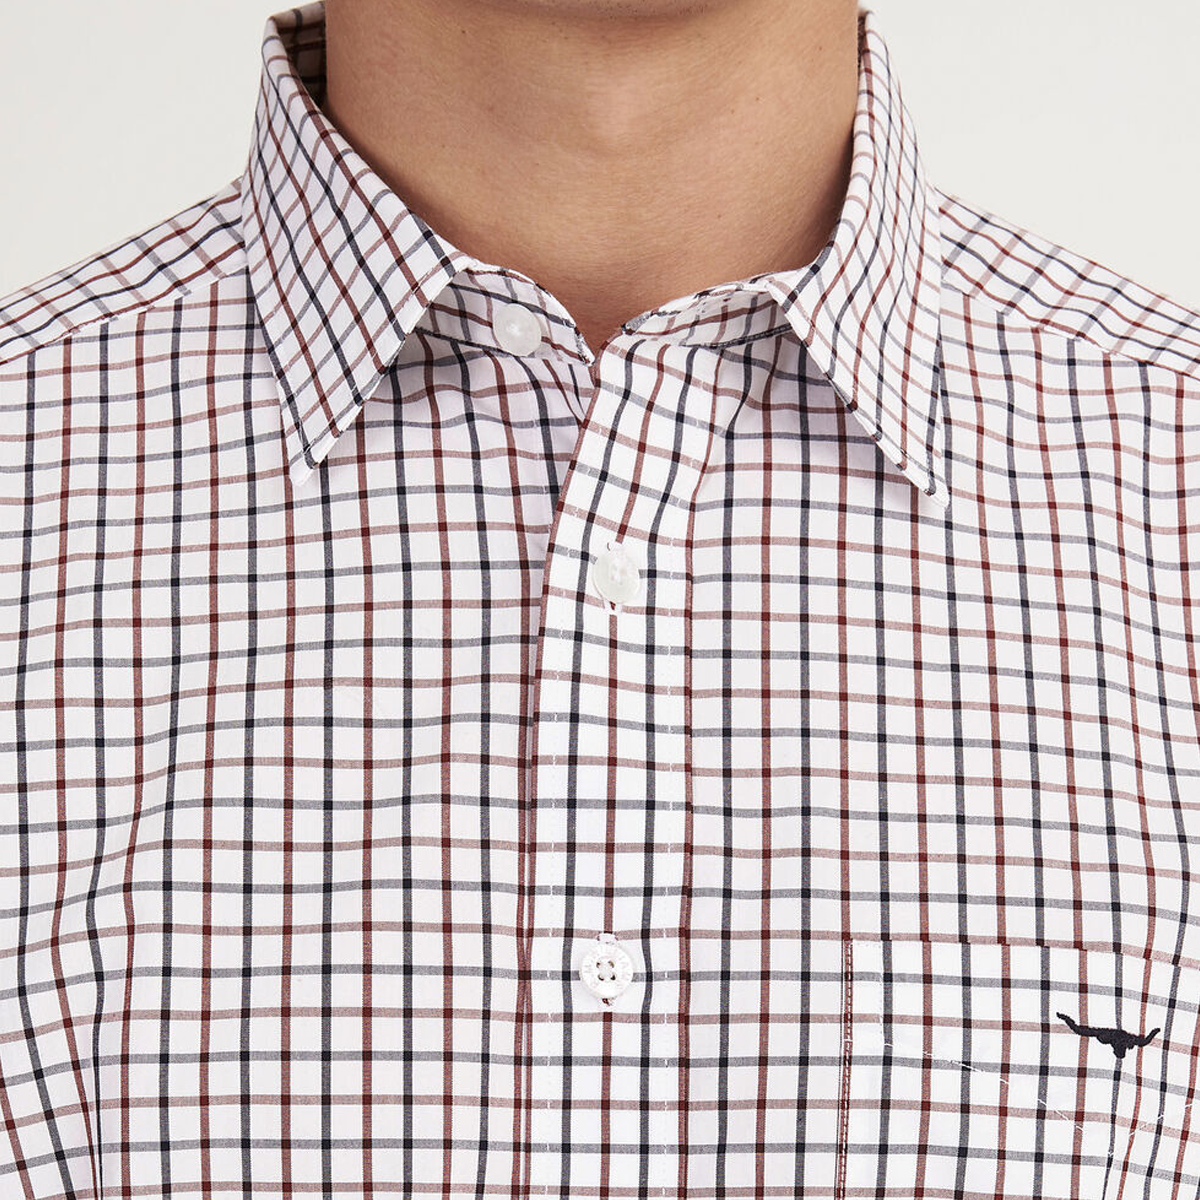 RM Williams Collins Button Down Shirt – Large Check- White/ Blue/ Rust